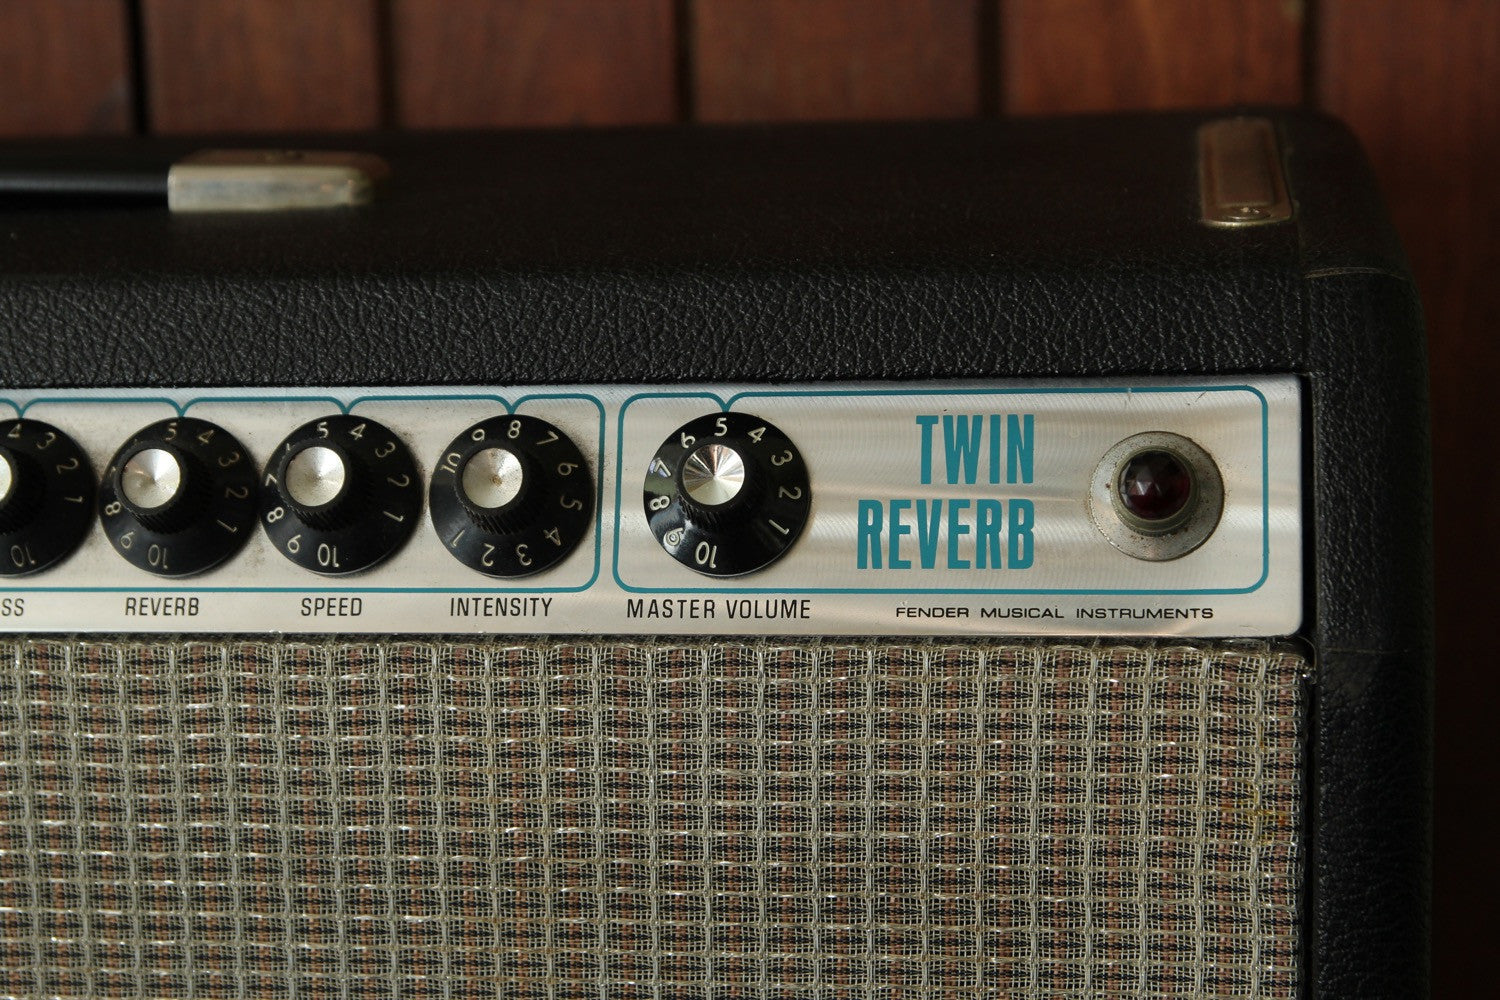 Fender Twin Reverb 1974 Model Vintage Valve Amplifier - The Rock Inn - 6